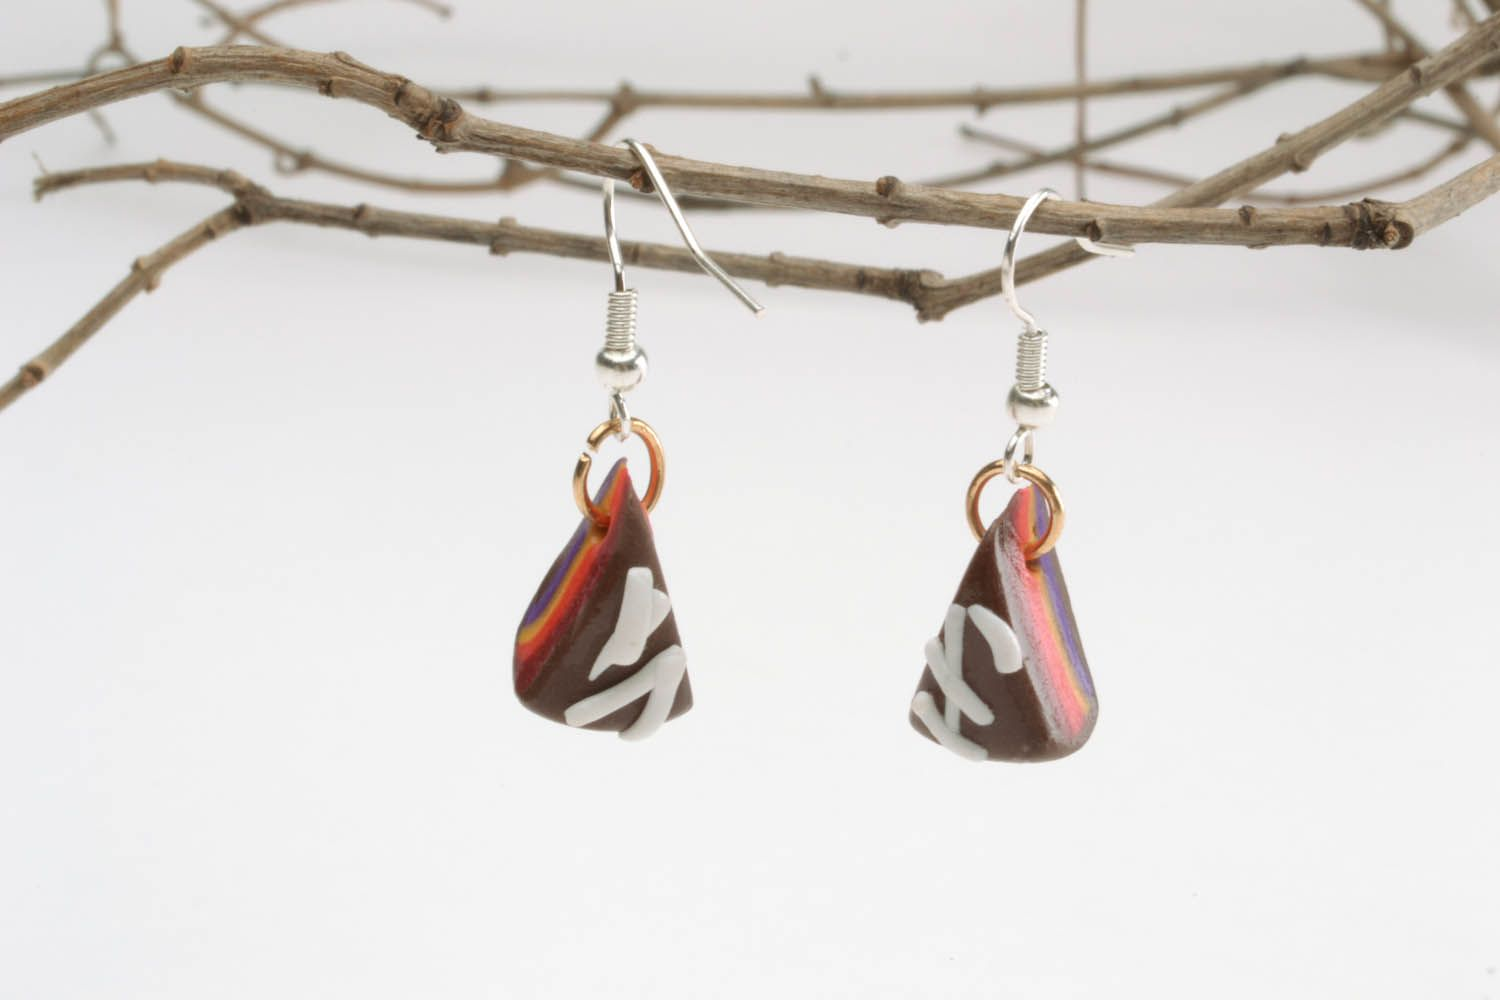 Polymer clay earrings in the shape of cakes photo 1